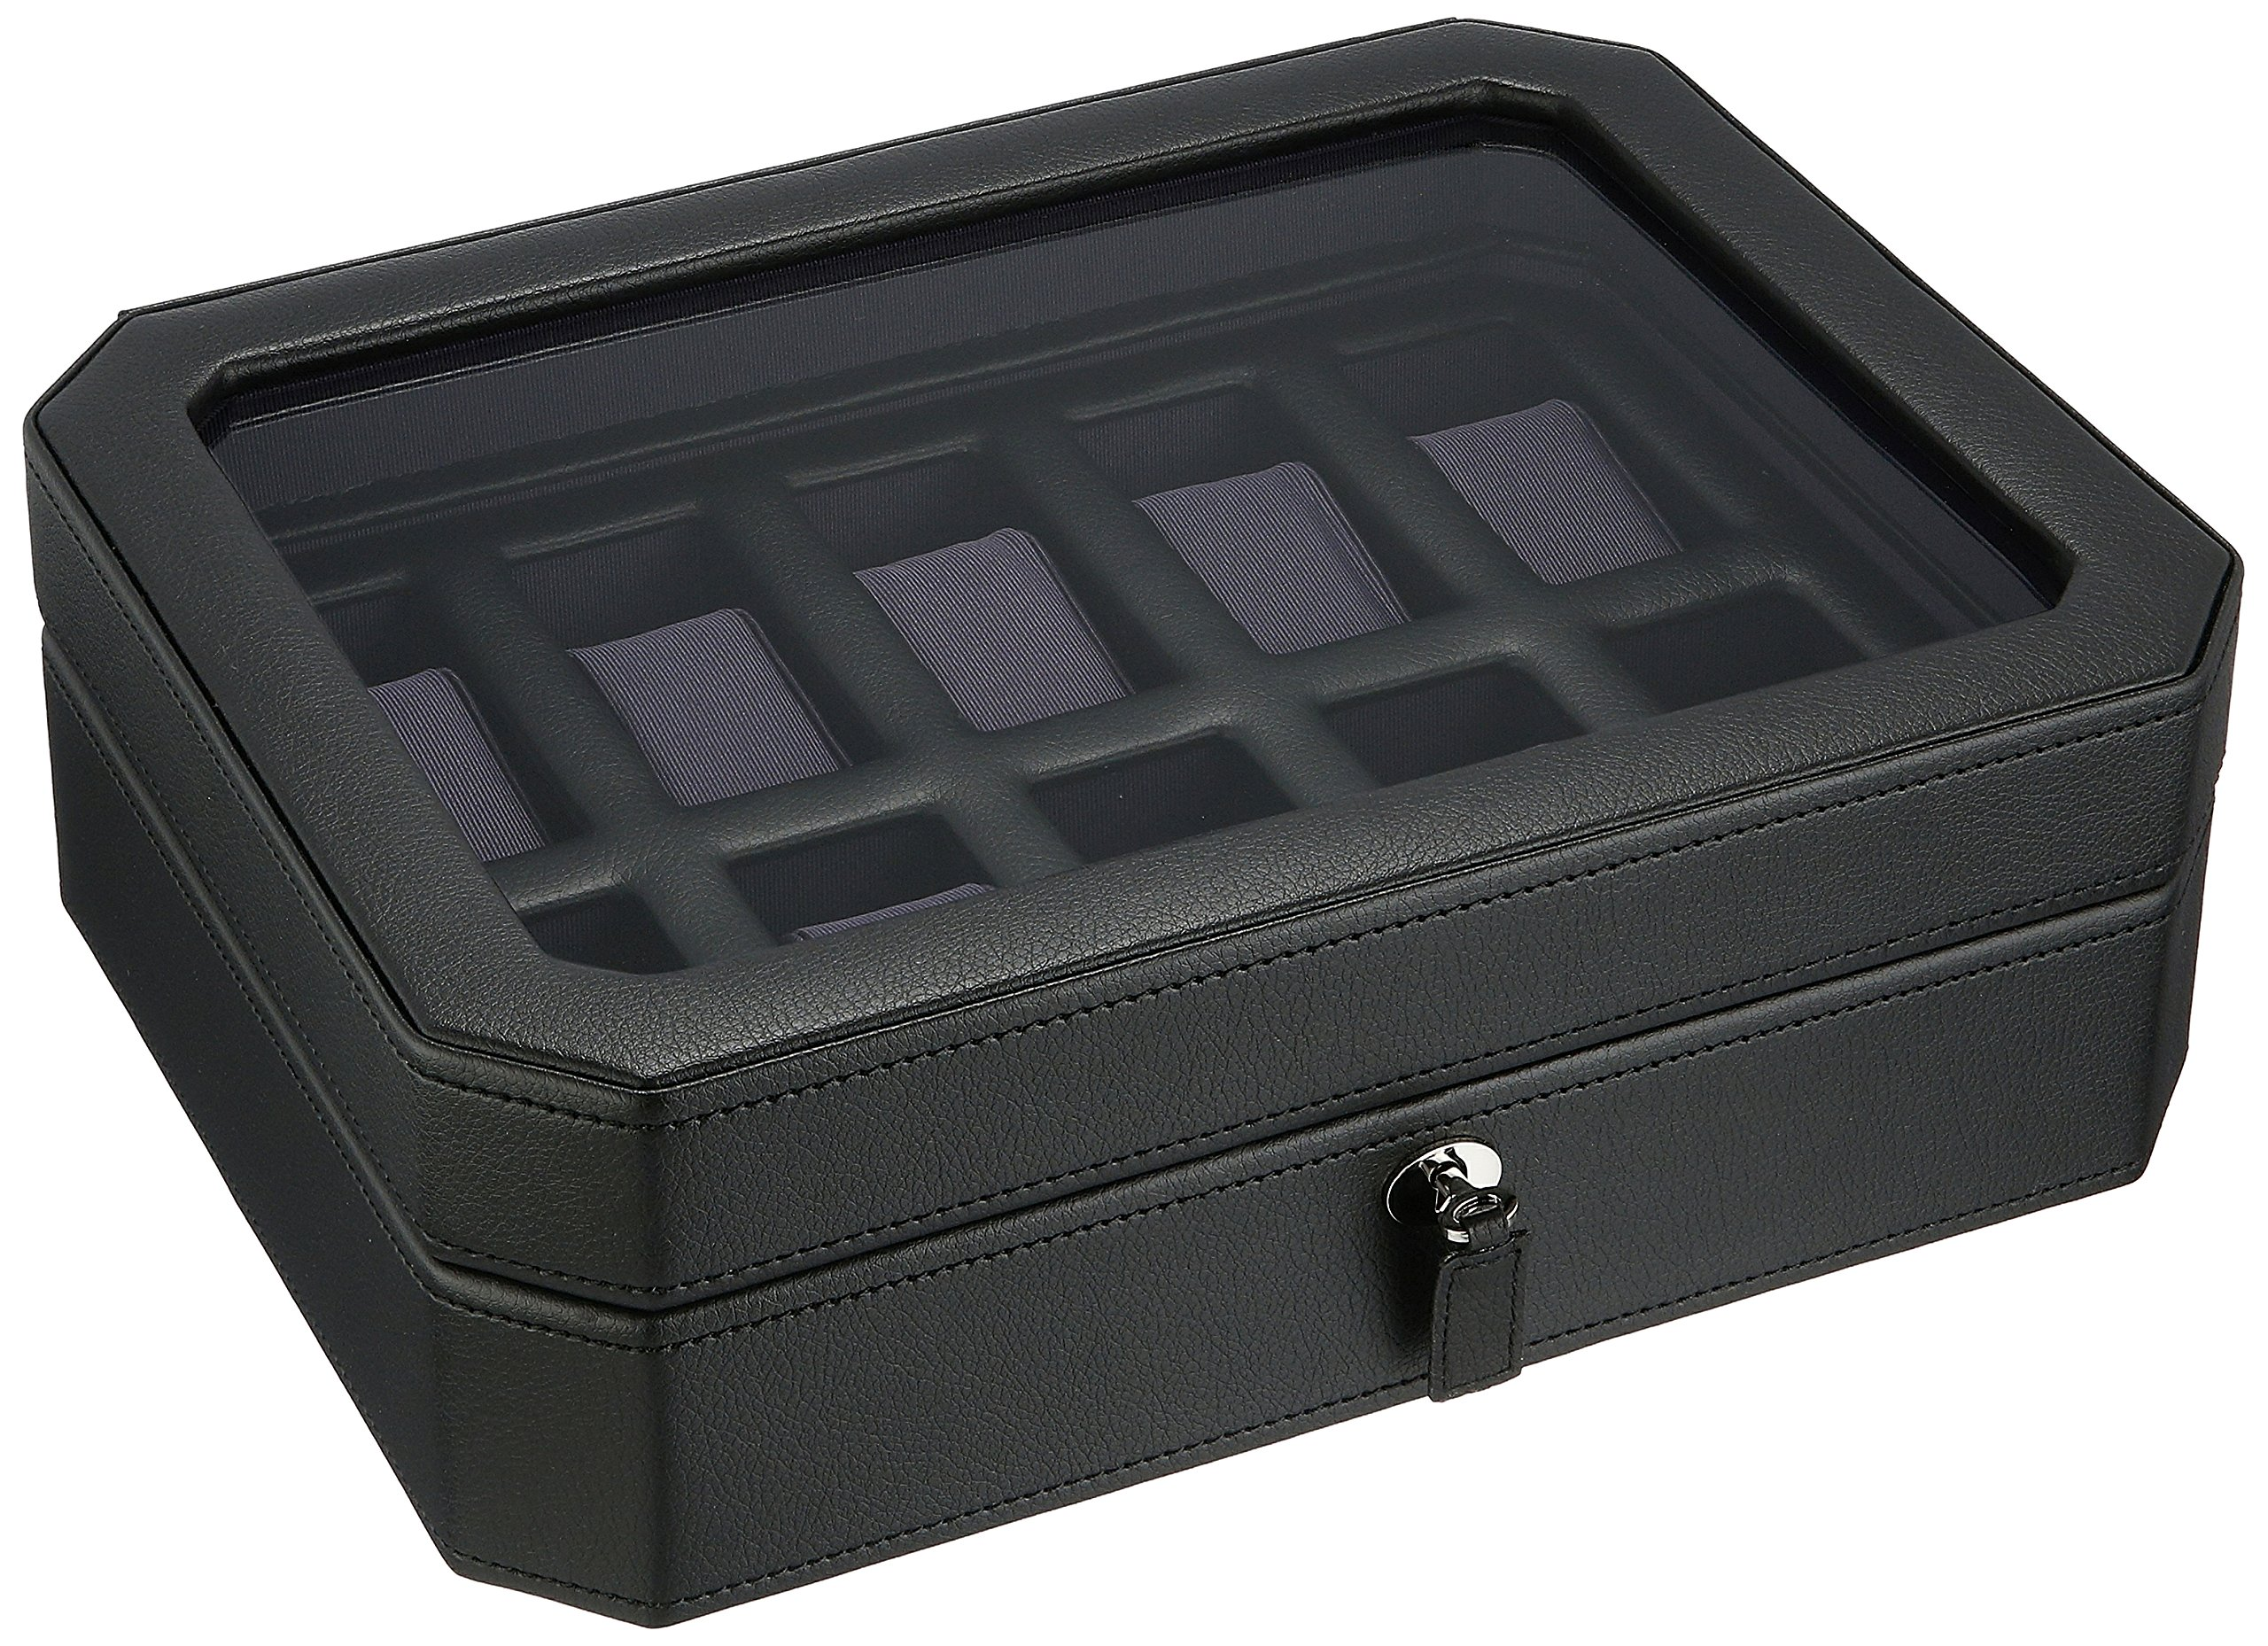 WOLF 458403 Windsor 10 Piece Watch Box with Cover, Black/Purple by WOLF